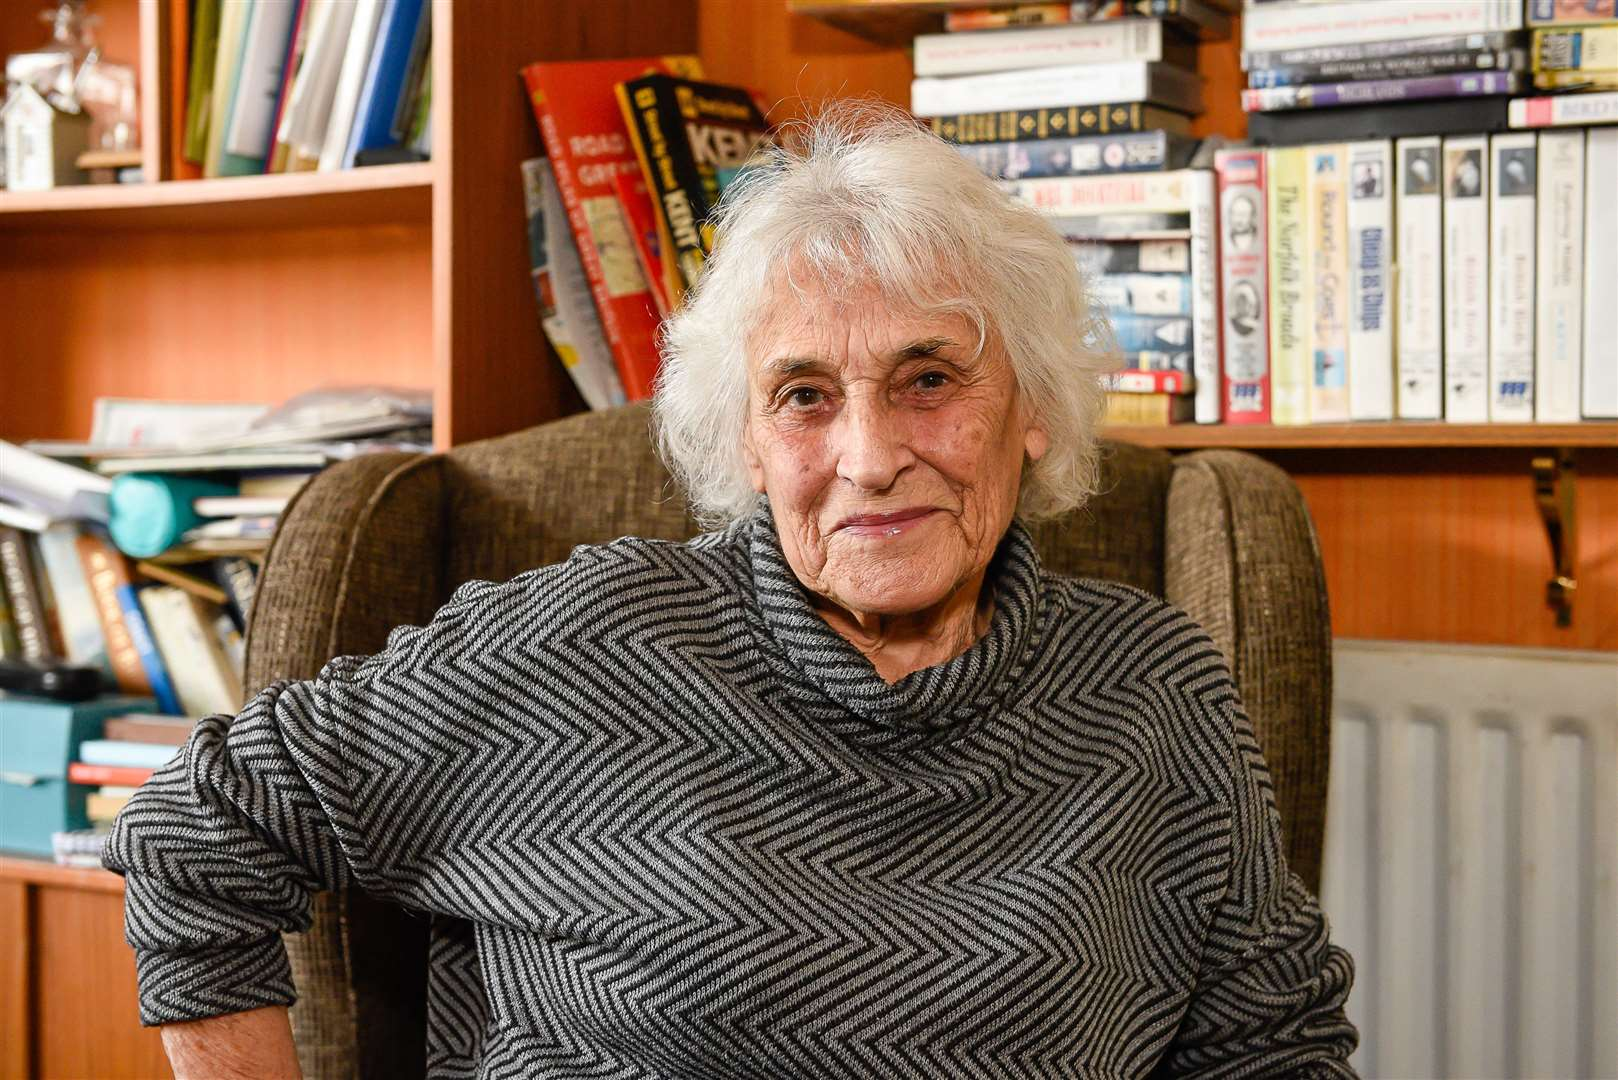 75th anniversary of the summer of the doodlebugs - June Mackenzie, 91, remembers them flying over Herne Bay when she was a teenager. 88 Central Avenue, Herne Bay CT6 8RU. 040519 Picture: Alan Langley..... (9651690)